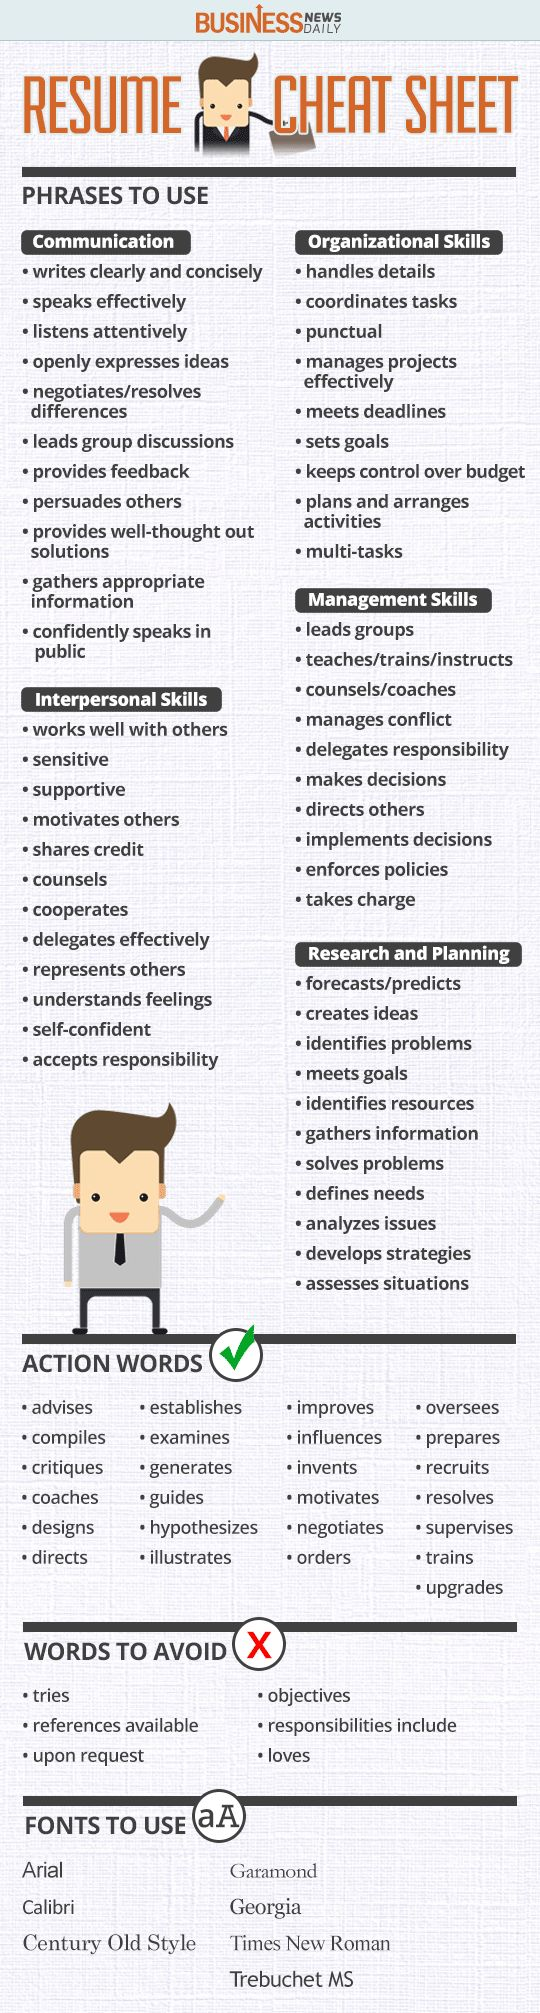 Opposenewapstandardsus  Pleasant  Ideas About Resume On Pinterest  Cv Format Resume Cv And  With Goodlooking Resume Cheat Sheet Infographic Andrews Almost Done With A Complete Unit On Employment Which With Appealing National Honor Society Resume Also Fpa Resume In Addition Personal Assistant Resume Sample And Sample Clerical Resume As Well As Cover Pages For Resume Additionally Fancy Resume Templates From Pinterestcom With Opposenewapstandardsus  Goodlooking  Ideas About Resume On Pinterest  Cv Format Resume Cv And  With Appealing Resume Cheat Sheet Infographic Andrews Almost Done With A Complete Unit On Employment Which And Pleasant National Honor Society Resume Also Fpa Resume In Addition Personal Assistant Resume Sample From Pinterestcom